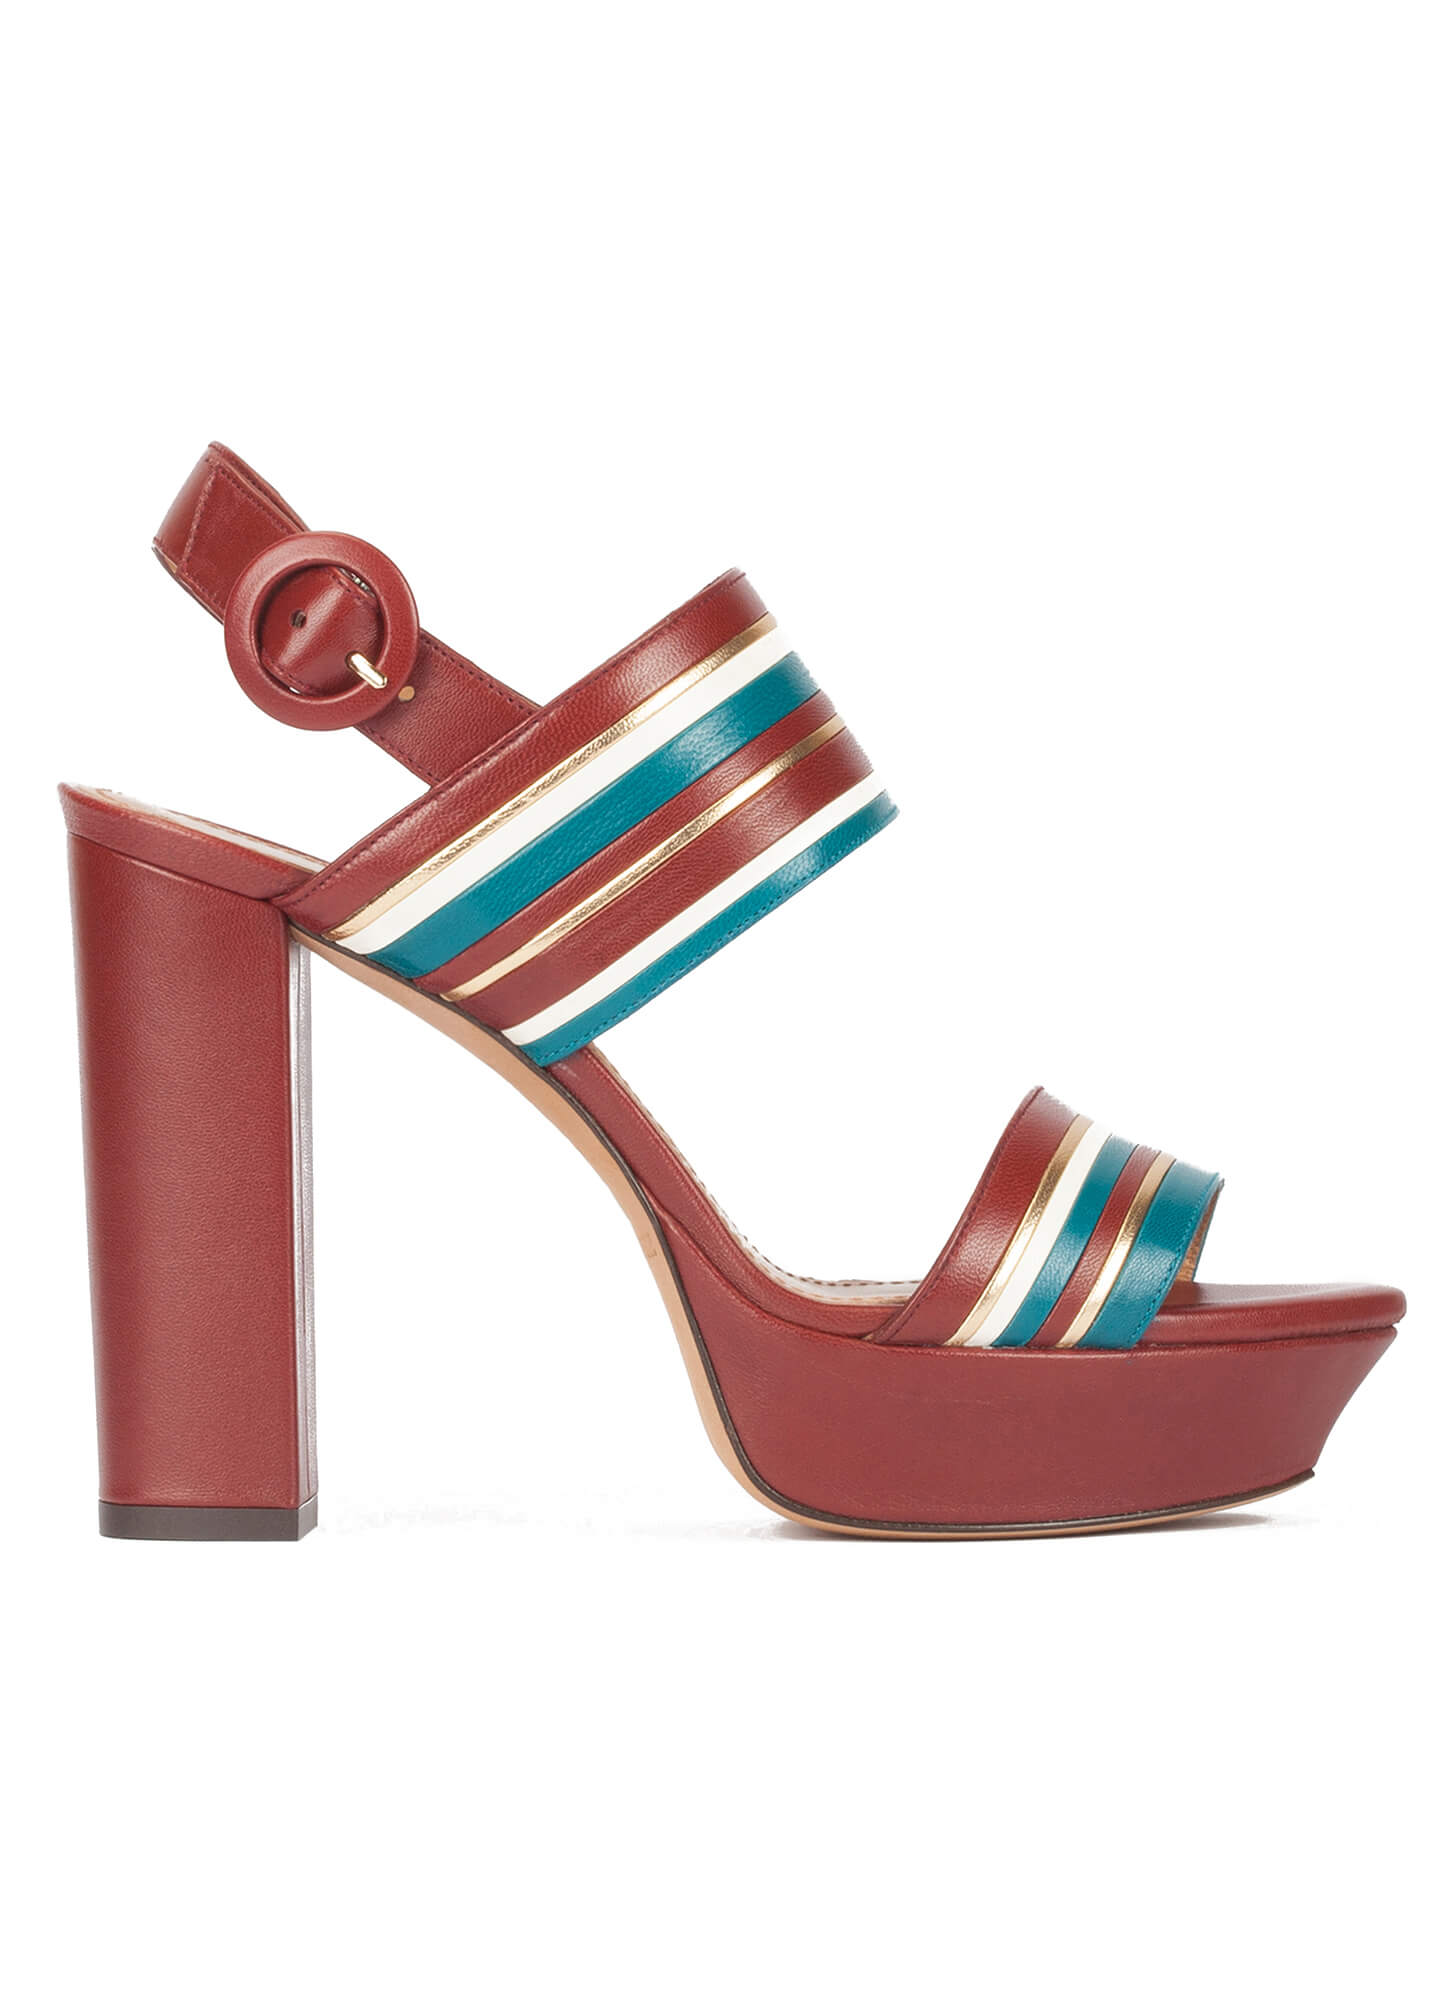 8bfc8fe51207 Multi-strap platform high block heel sandals in burgundy leather .